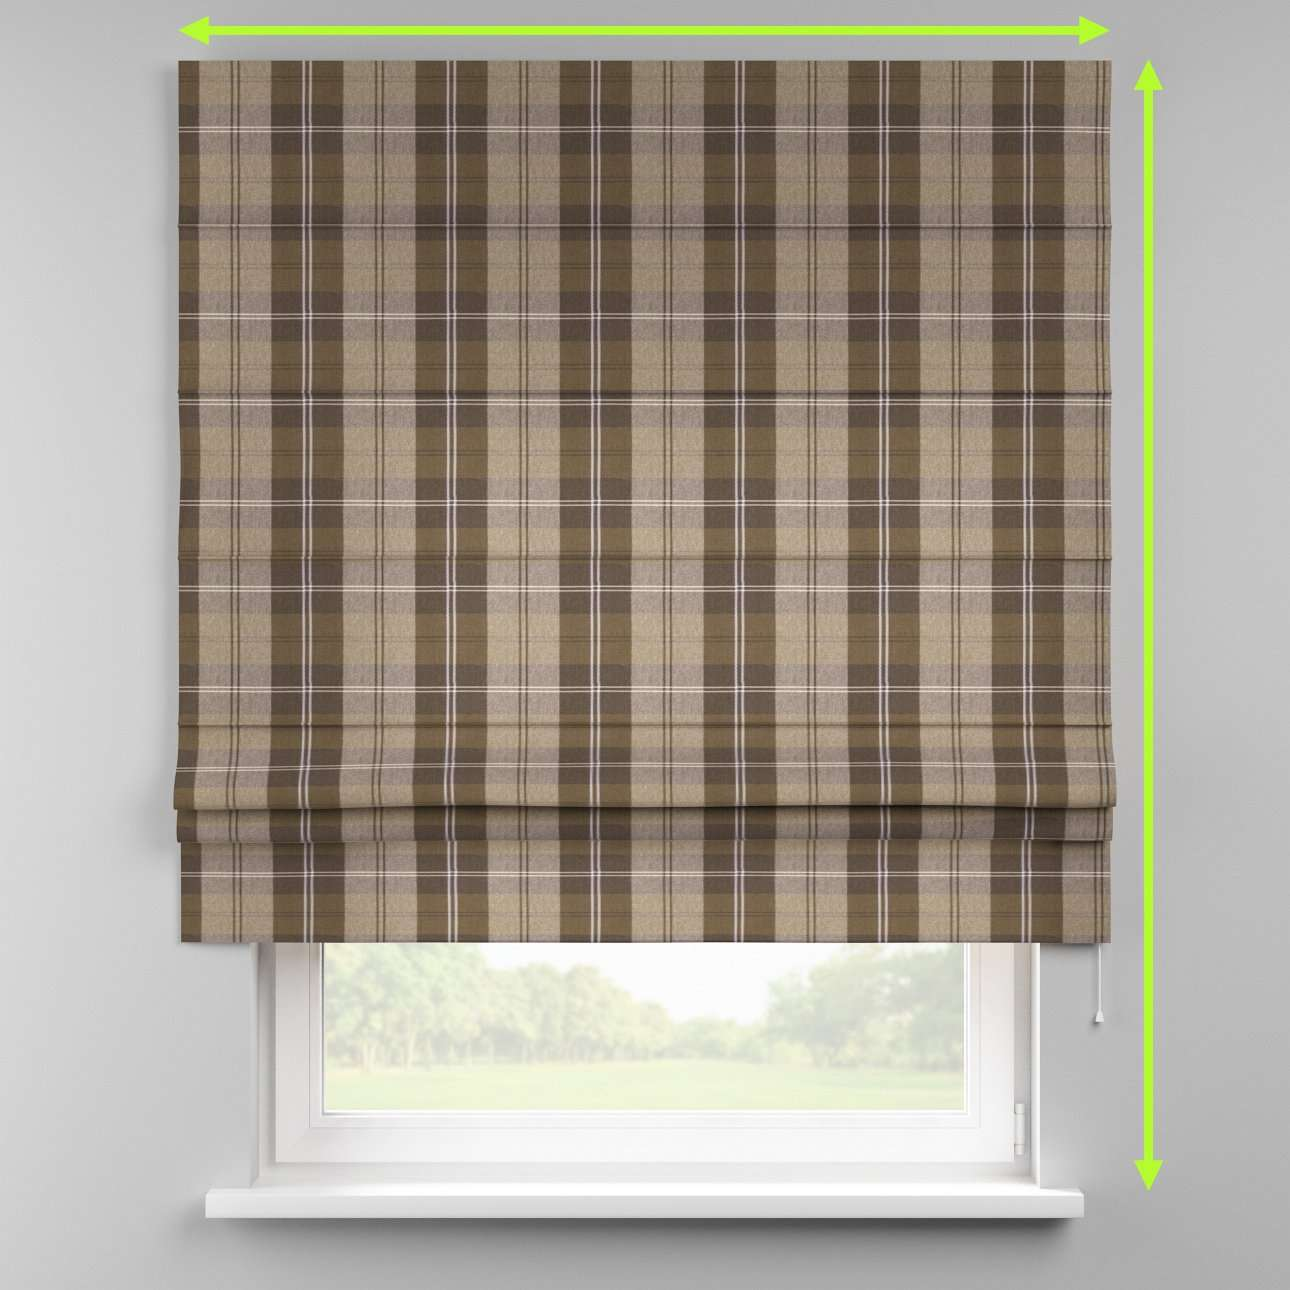 Padva roman blind  in collection Edinburgh , fabric: 115-76